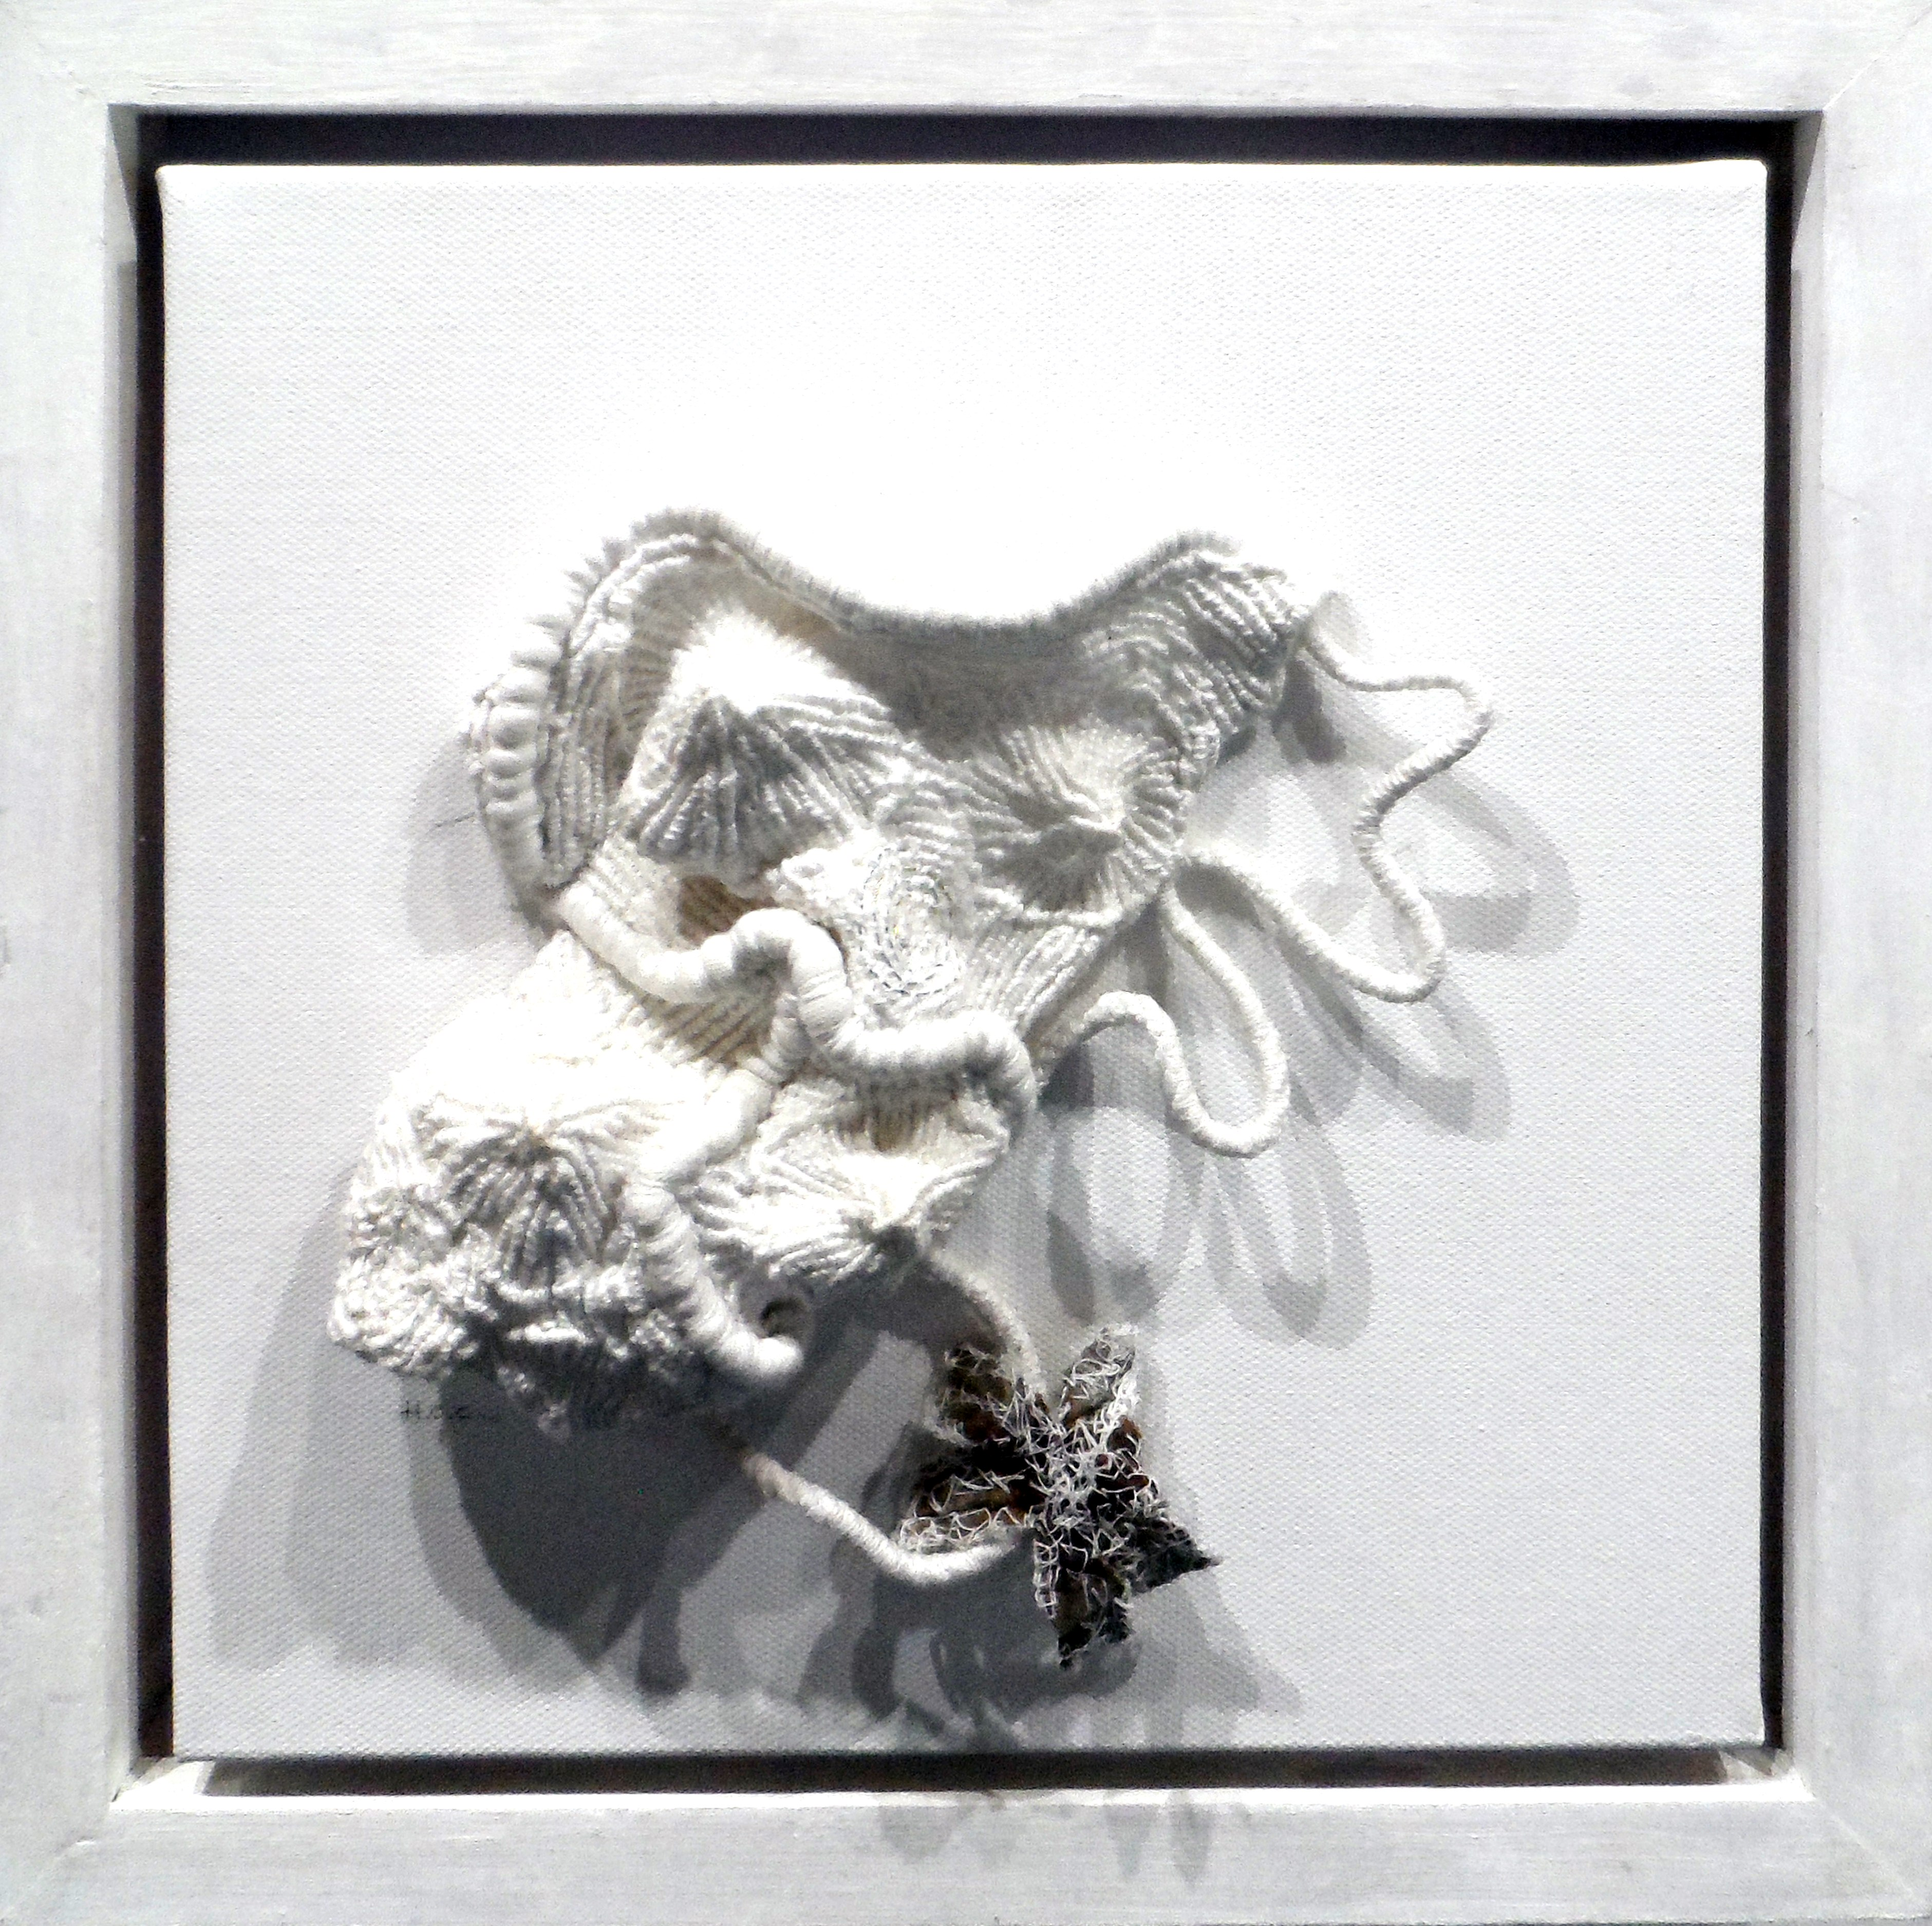 SEASHELLS 2 by Helen Cooper, whitework/manipulated fabric, Re-View Textile Group, Frodsham 2019